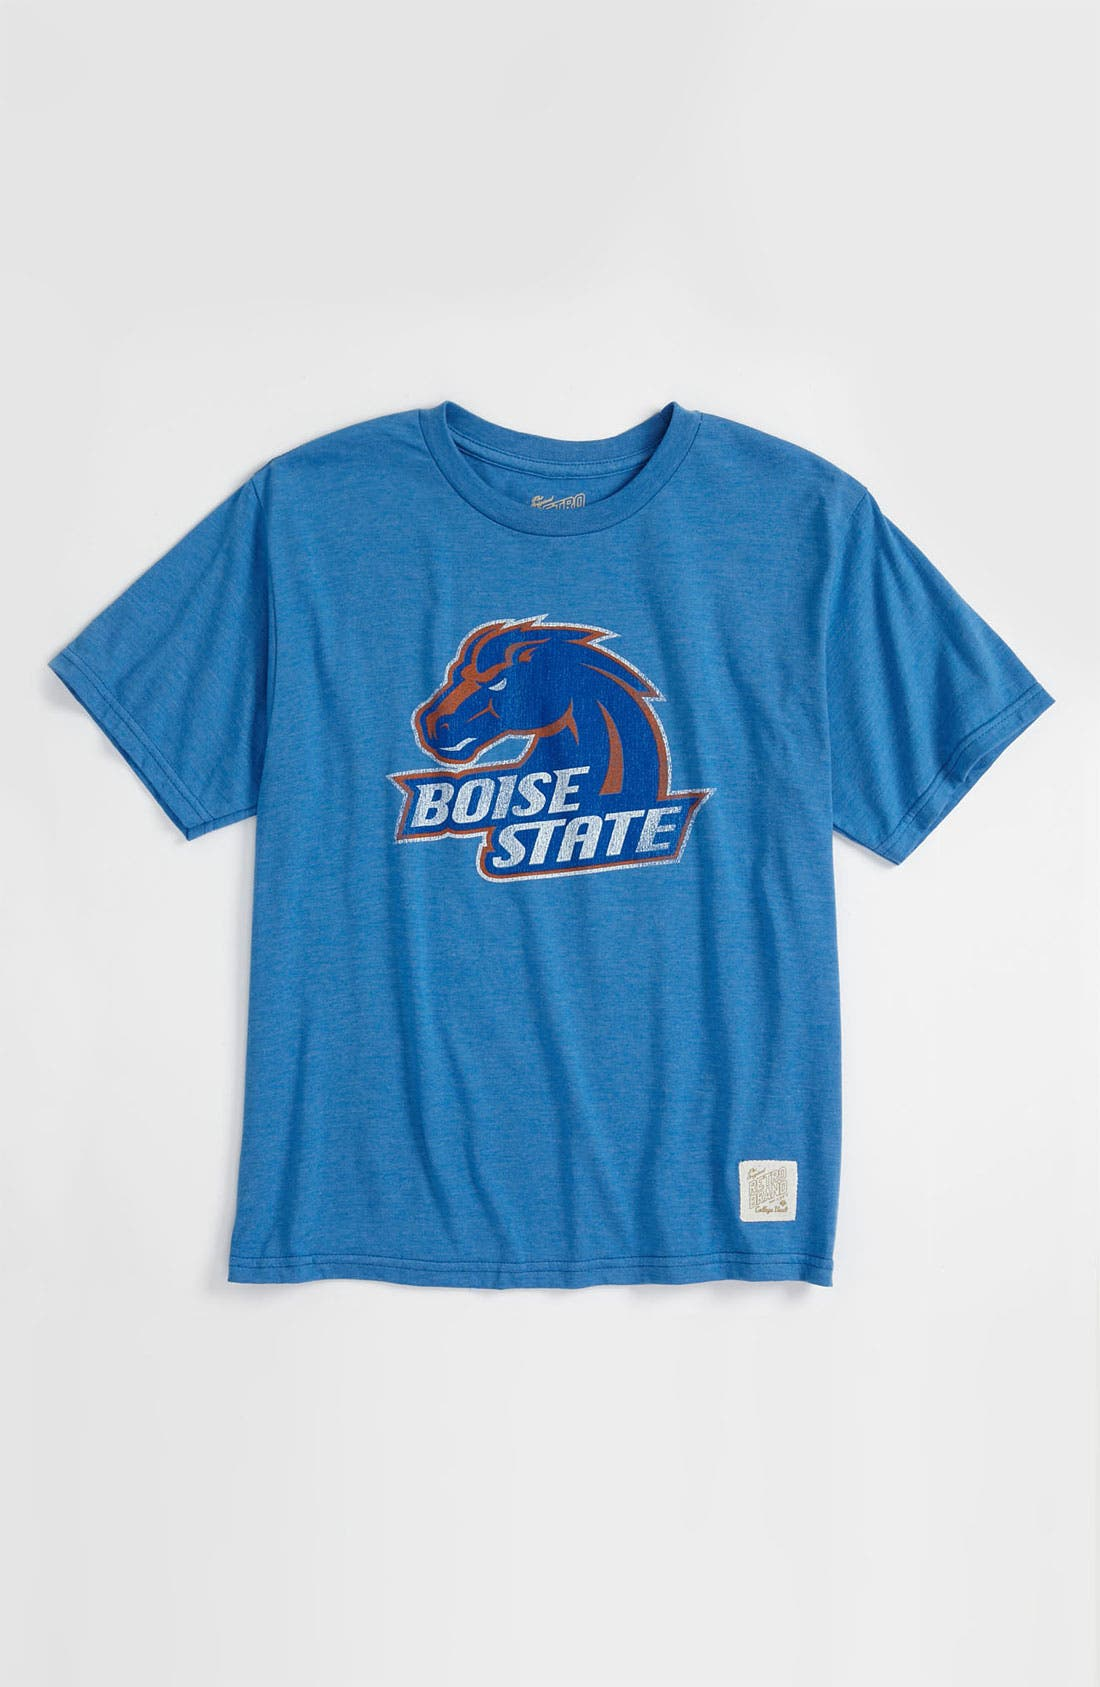 Main Image - The Original Retro Brand 'Boise State' T-Shirt (Big Boys)